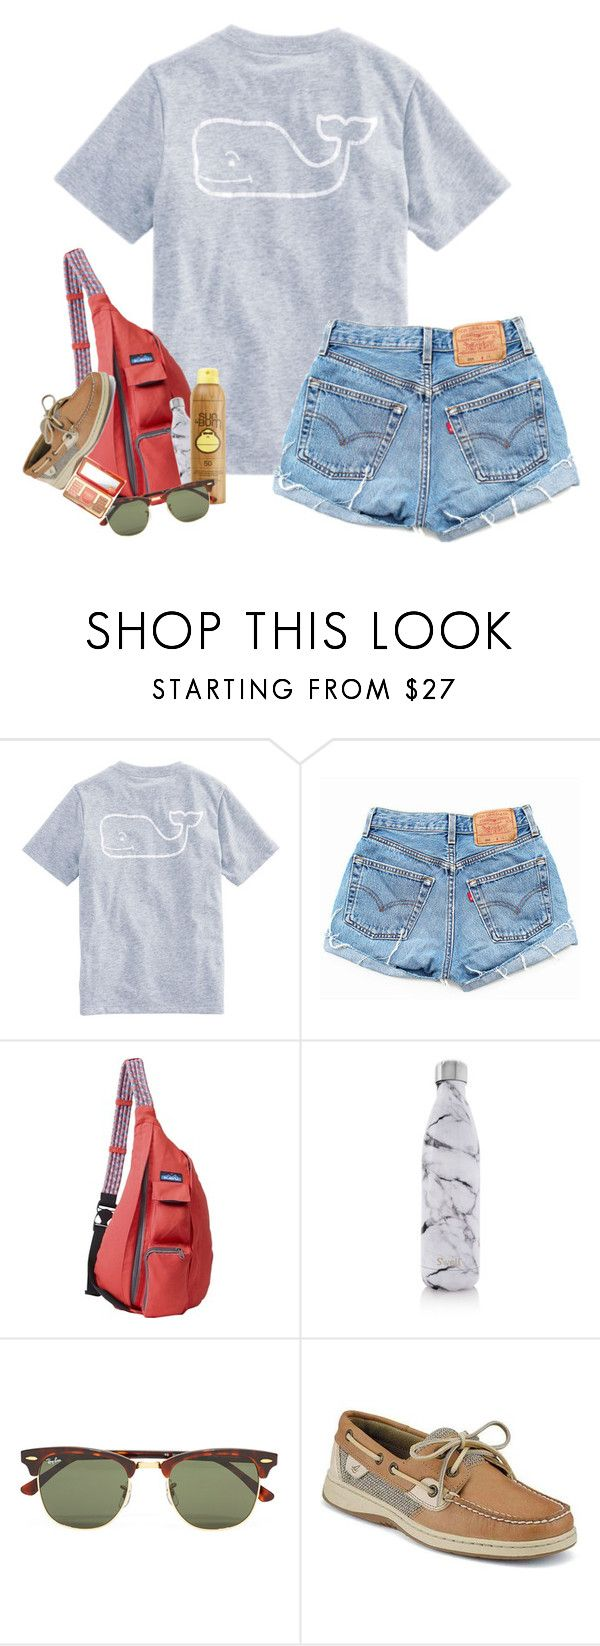 """Cant wait for spring break!☀️"" by hannyjep on Polyvore featuring Vineyard Vines, Levi's, Kavu, S'well, Sun Bum, Ray-Ban and Sperry"